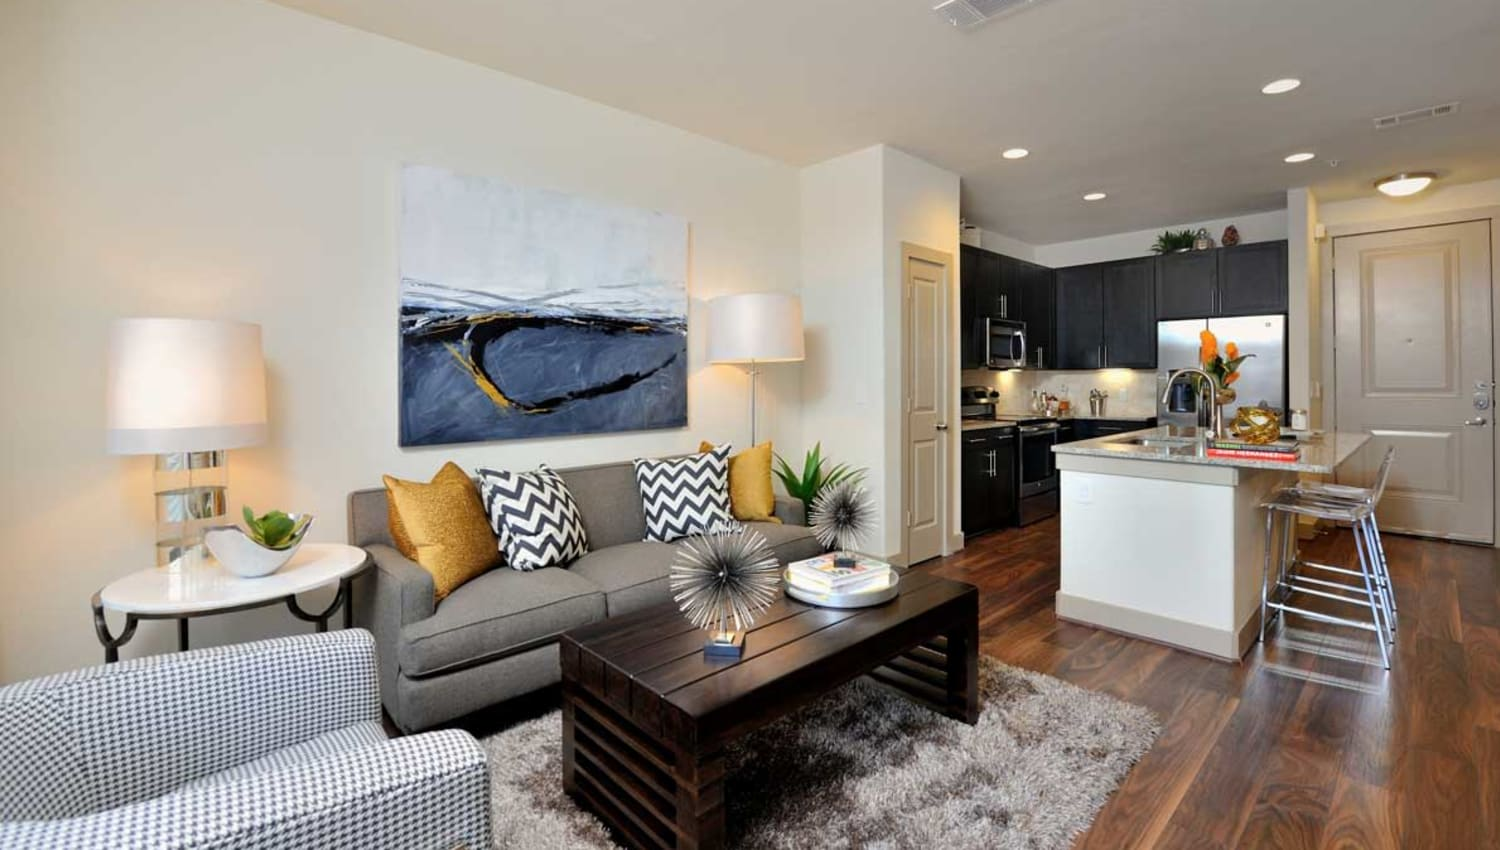 Model living room and kitchen areas at Olympus Falcon Landing in Katy, Texas